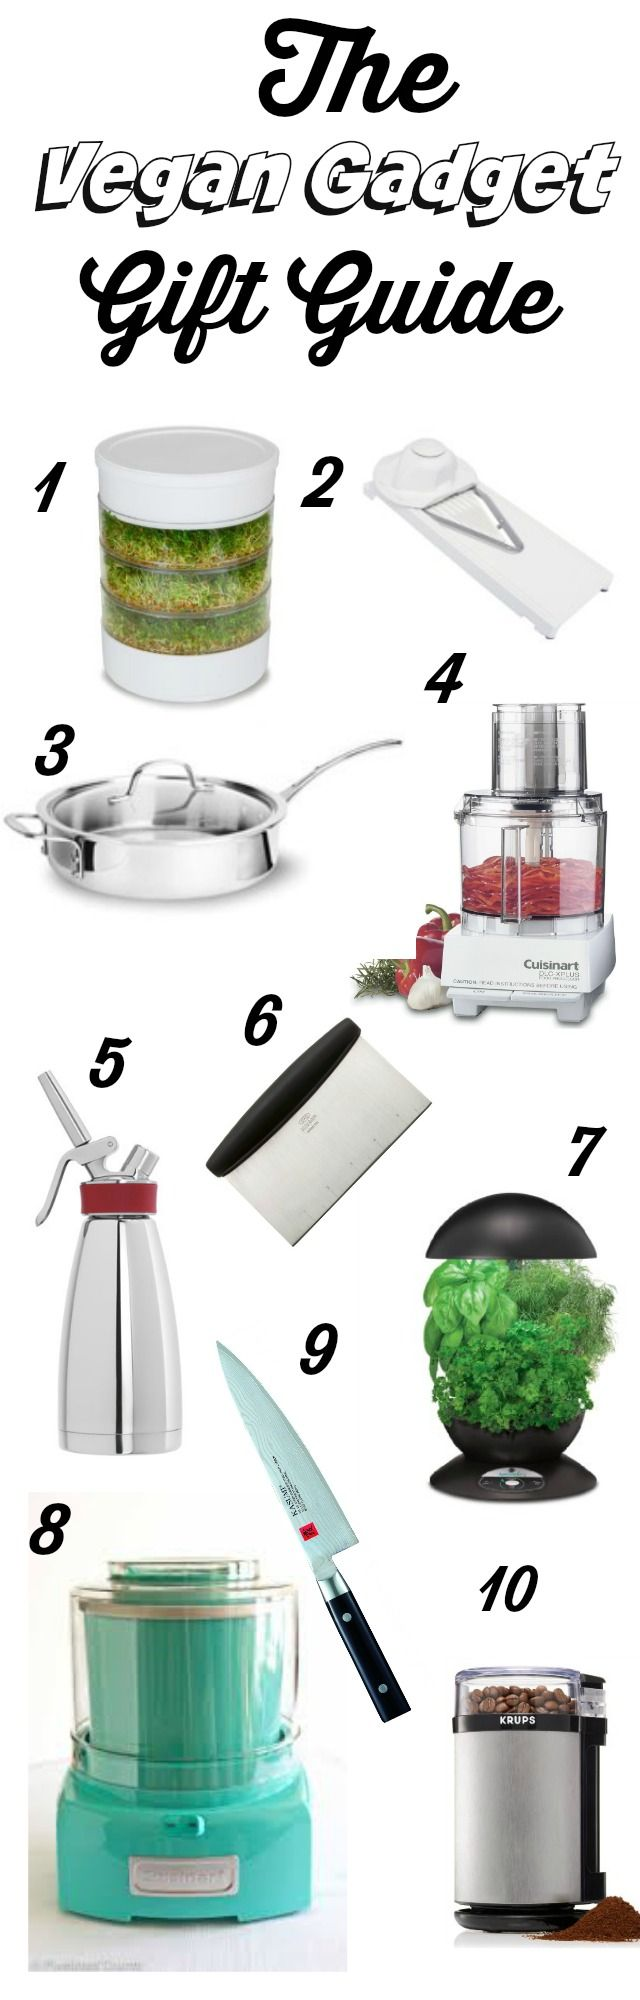 Use this Vegan Gadget Gift Guide to get your vegan the perfect gift for the holidays!